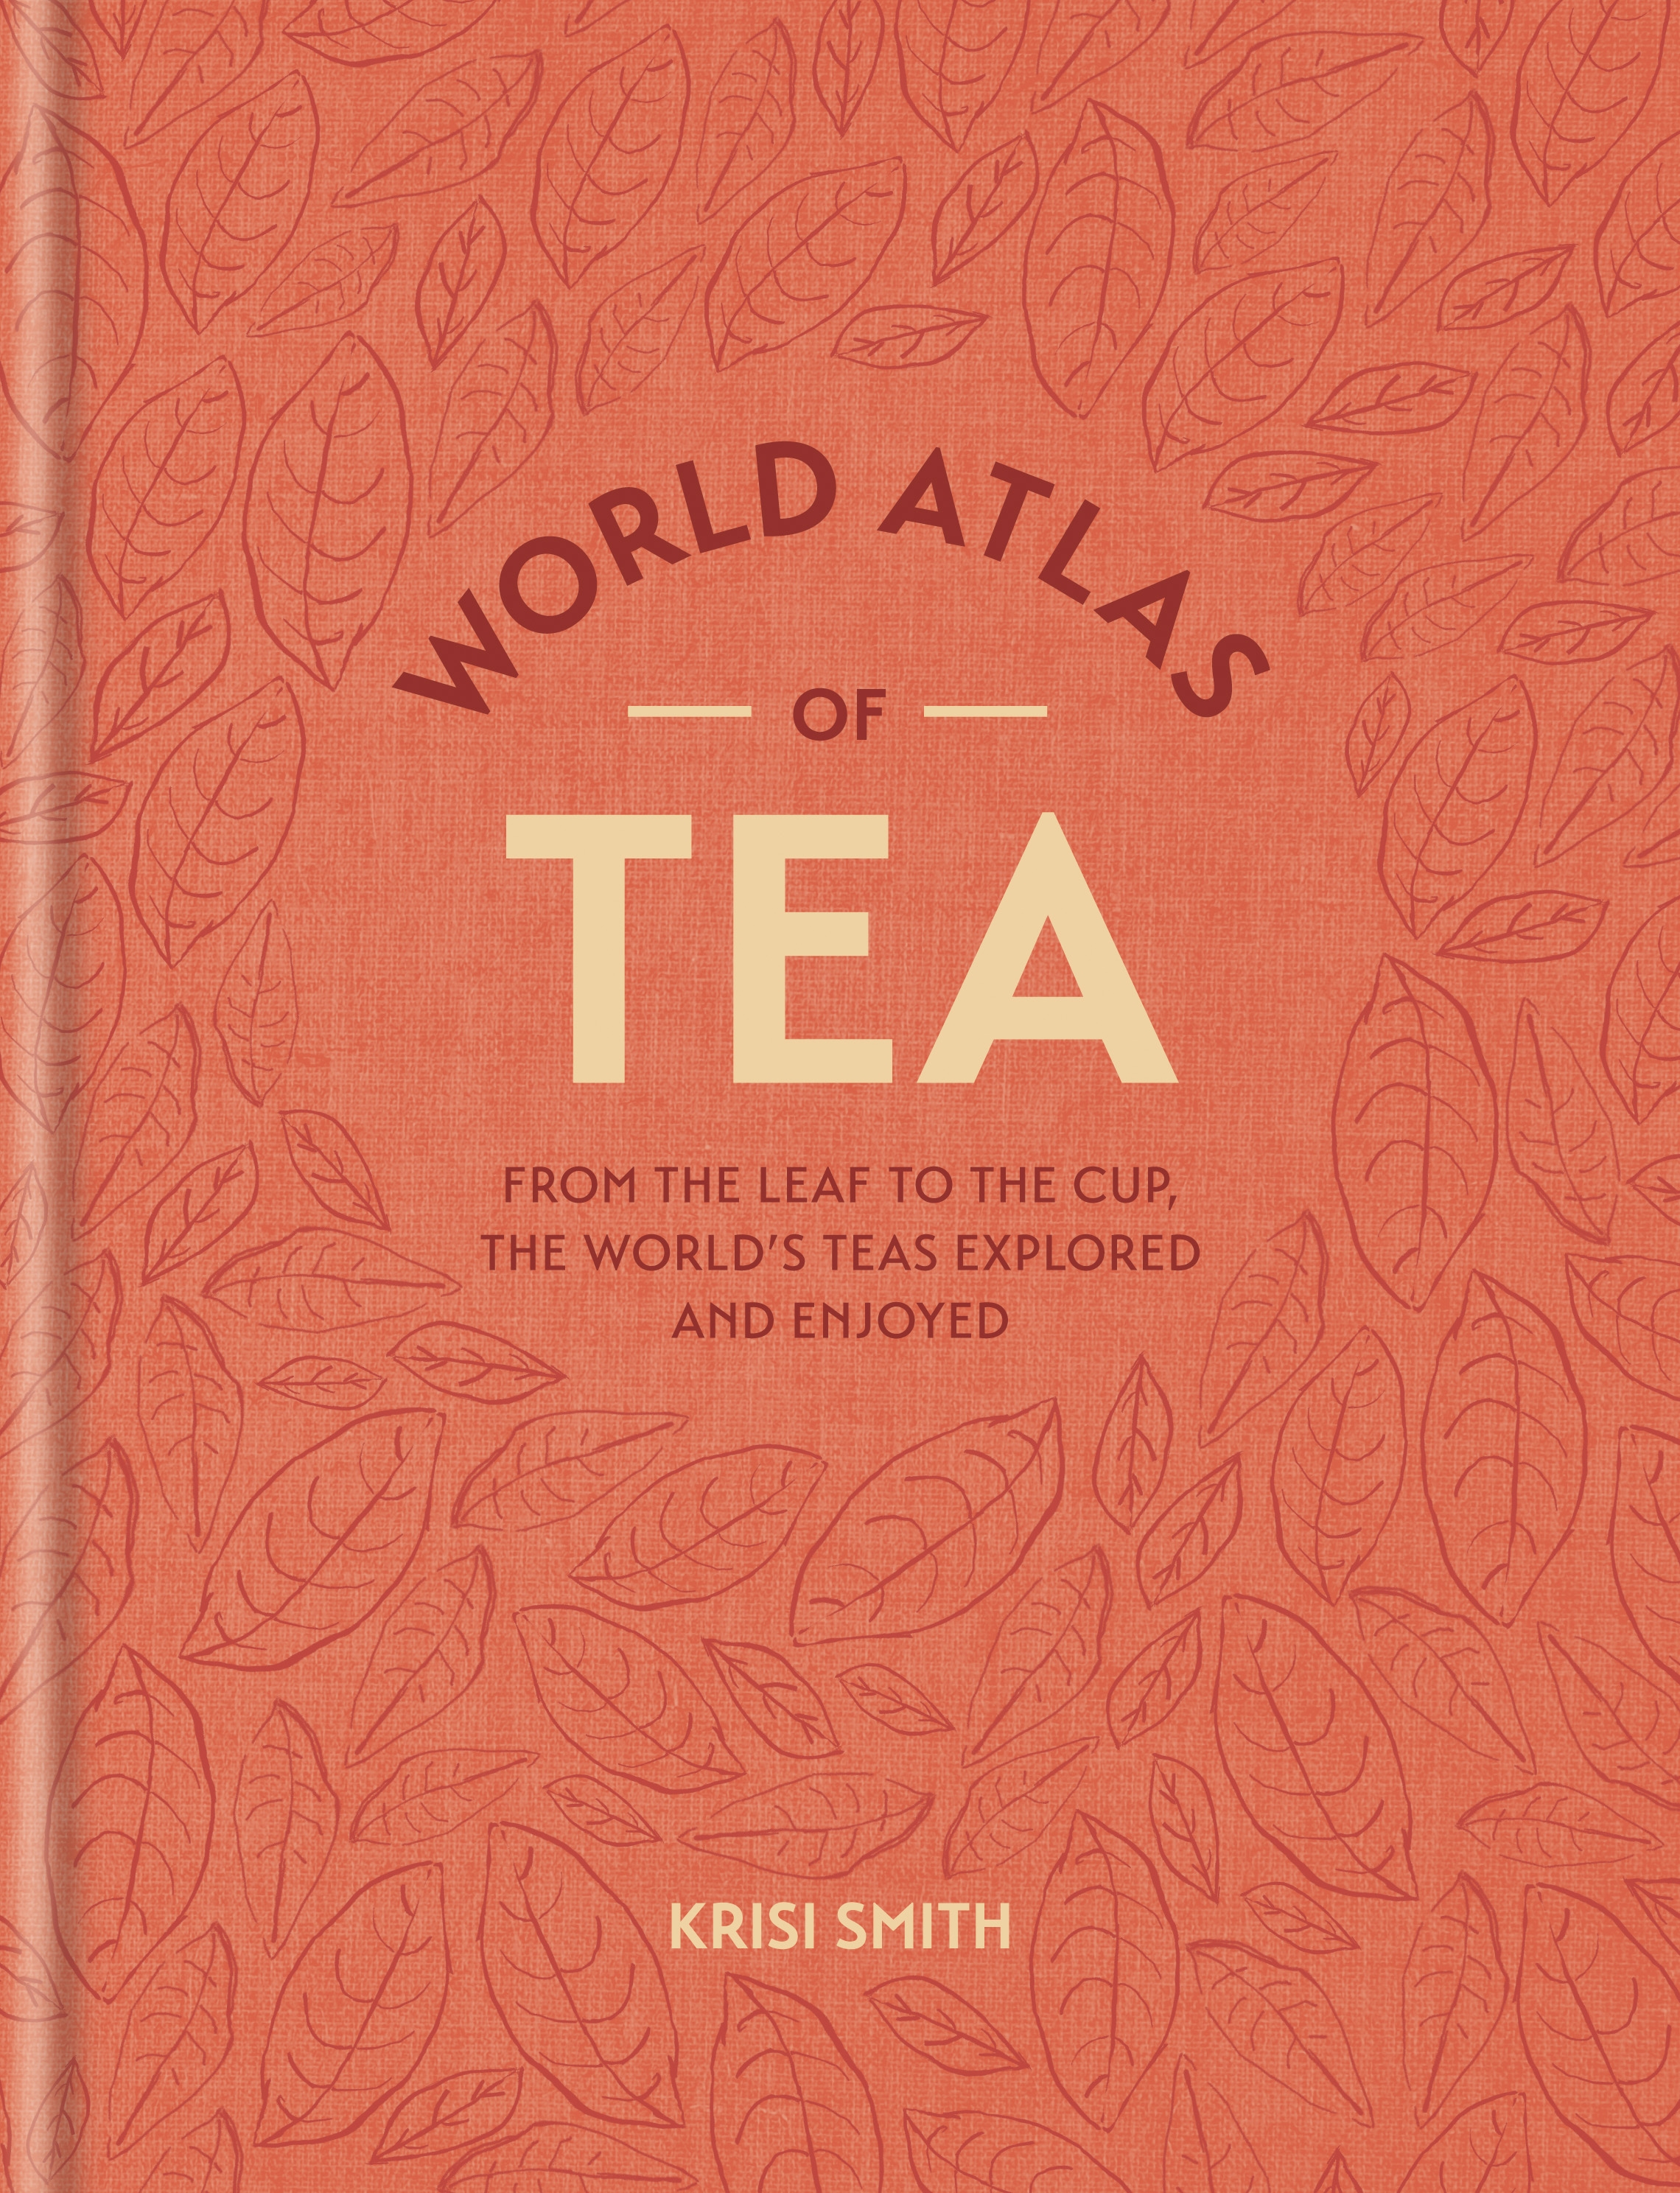 World Atlas of Tea: From the leaf to the cup, the world's teas explored and enjoyed